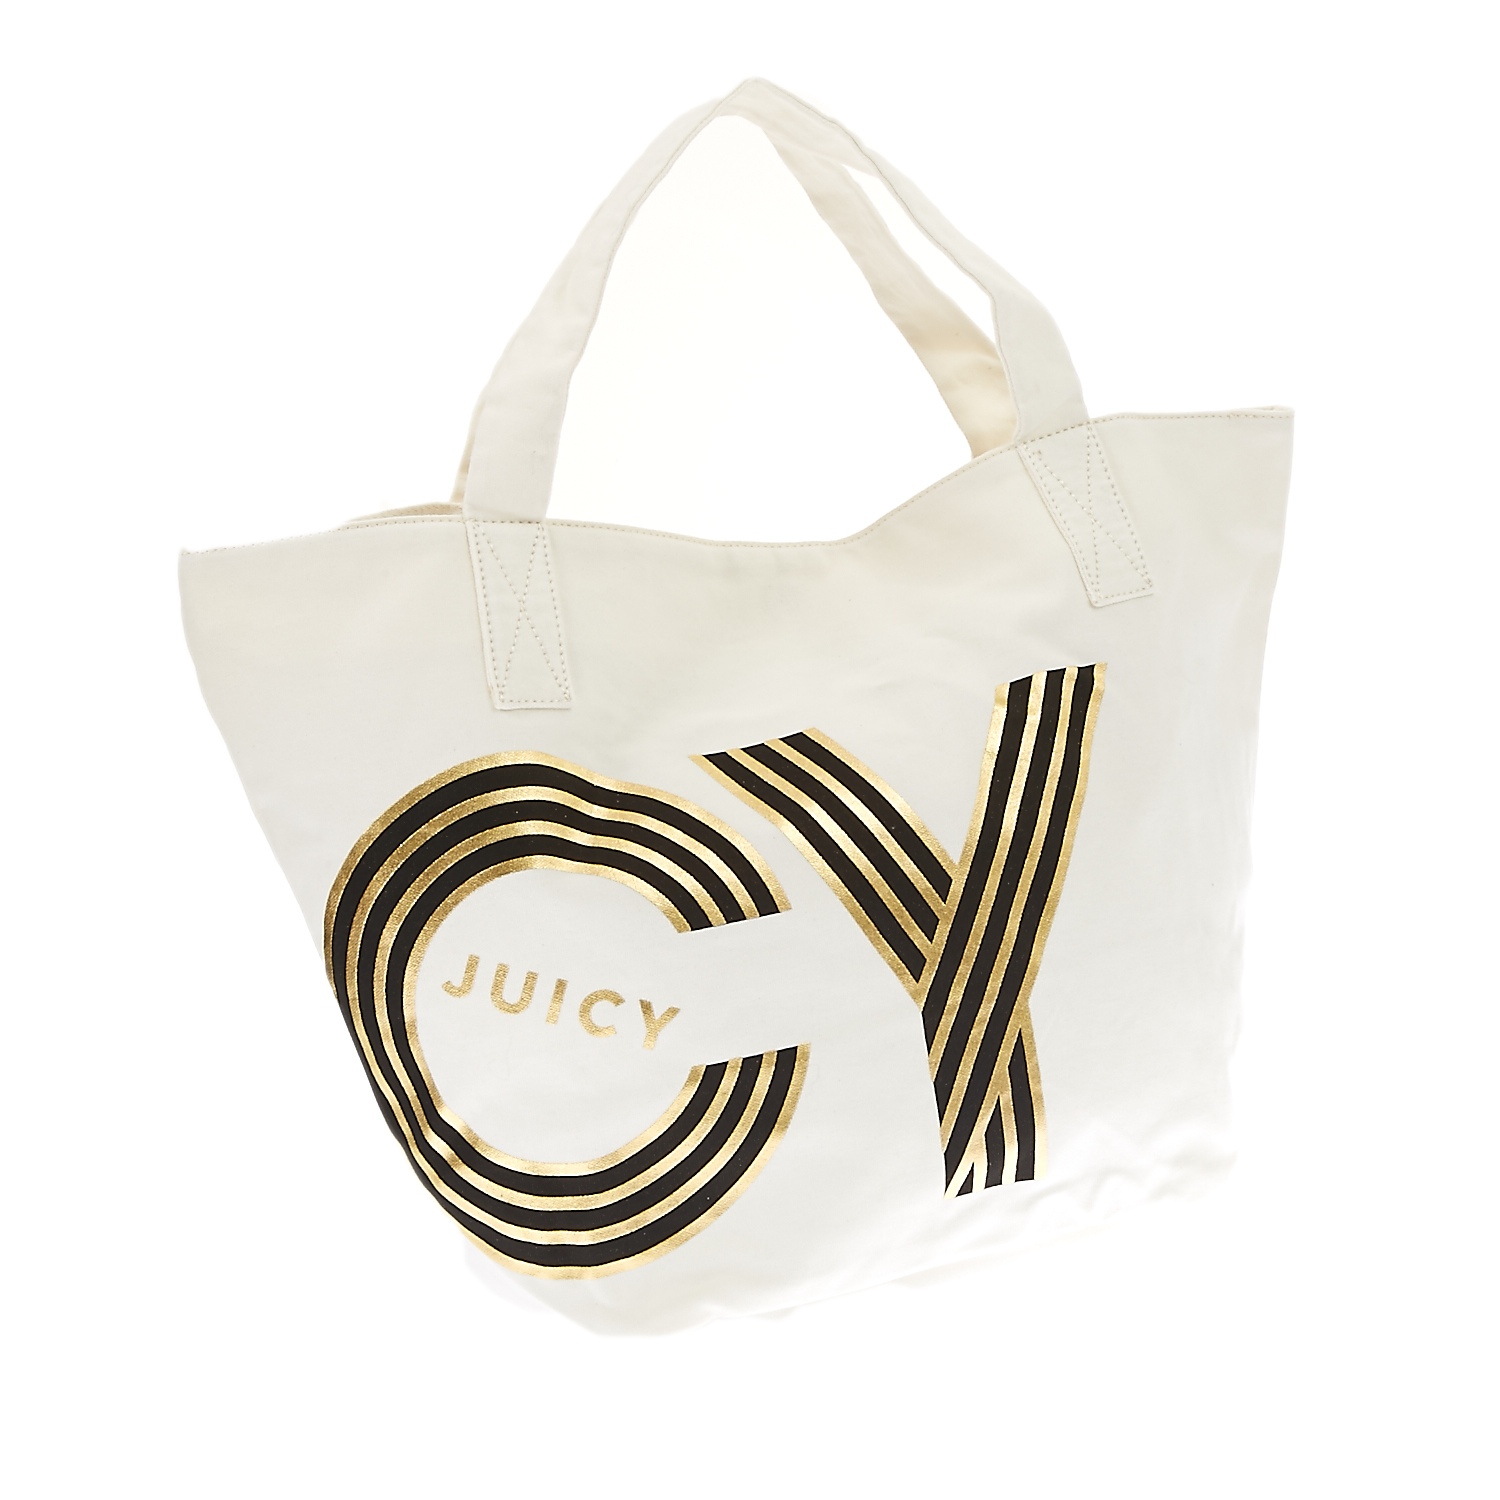 JUICY COUTURE – Γυναικεία τσάντα Juicy Couture ημίλευκη 1409502.0-0090